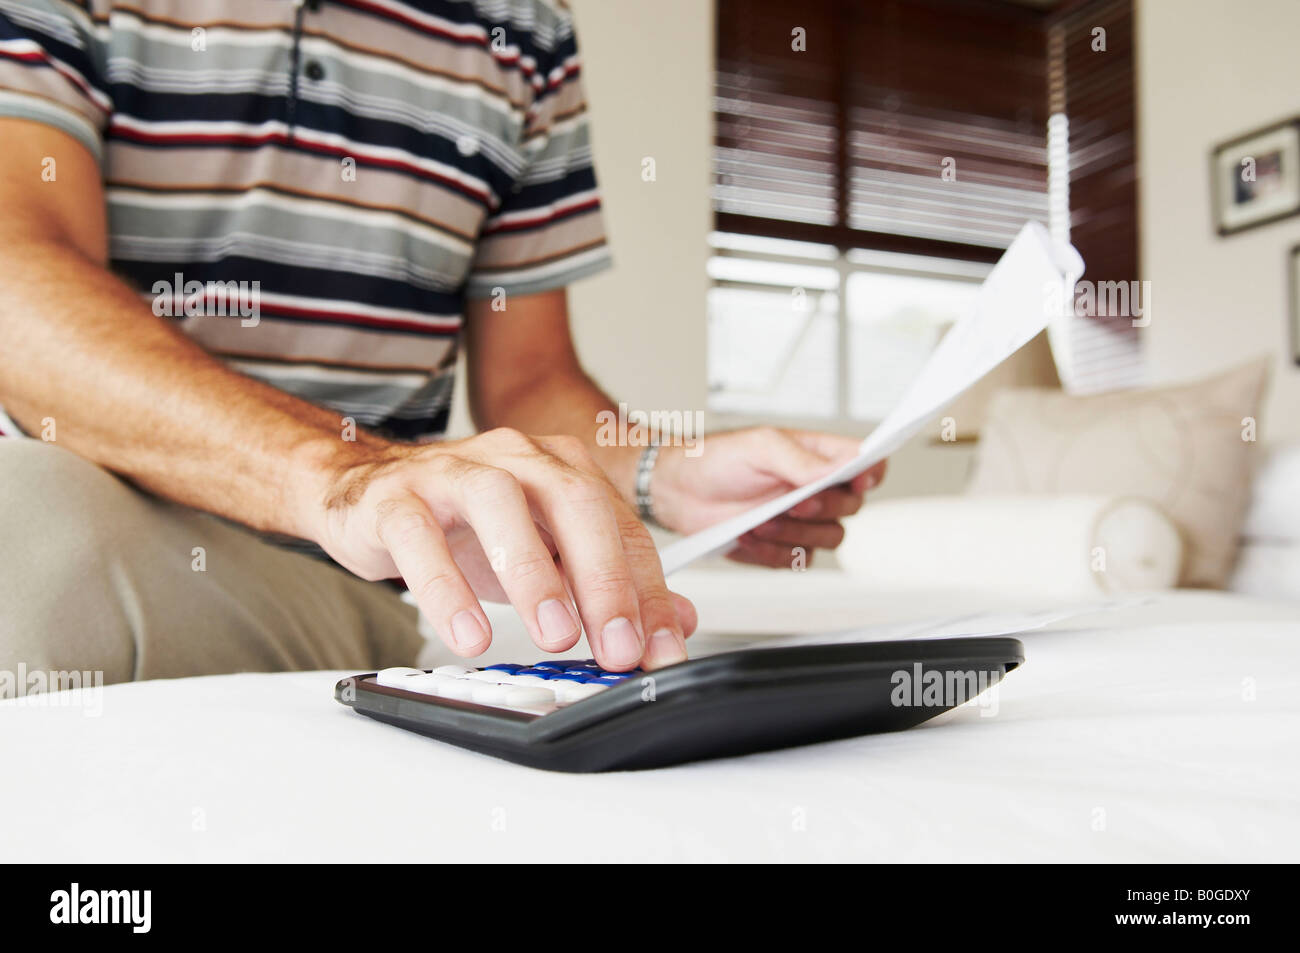 Male's hand adds up bills on calculator - Stock Image